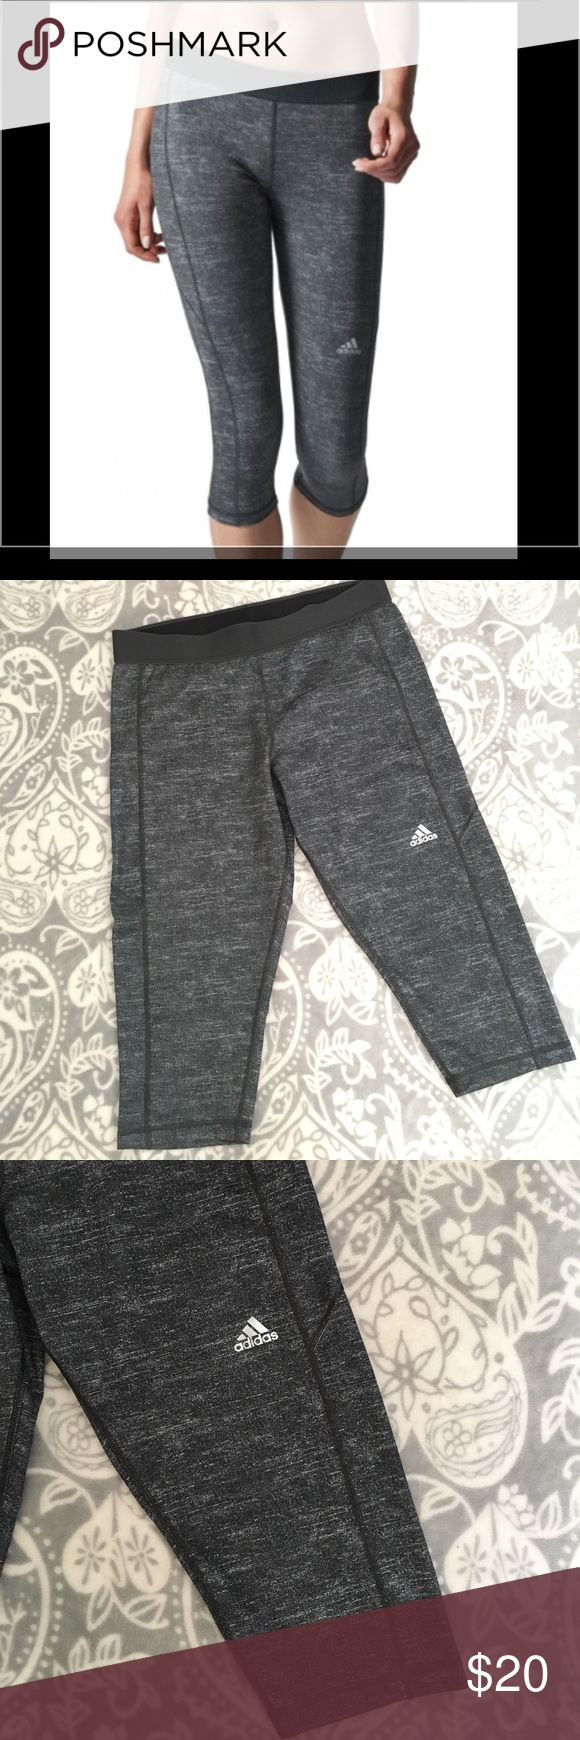 New Listing! Adidas Techfit Capris Adidas Techfit Crops in Dark Grey Heather/Matte Silver. These women's capris are made with techfit® that focuses key muscle groups to help you work hard. The three-quarter training tights have supportive compression fabric and feature UPF 50+ sun protection that lets you take your regimen beyond the gym. And it's all made from climalite® fabric.  82% polyester / 18% elastane. Size Large! EUC! Adidas Pants Leggings